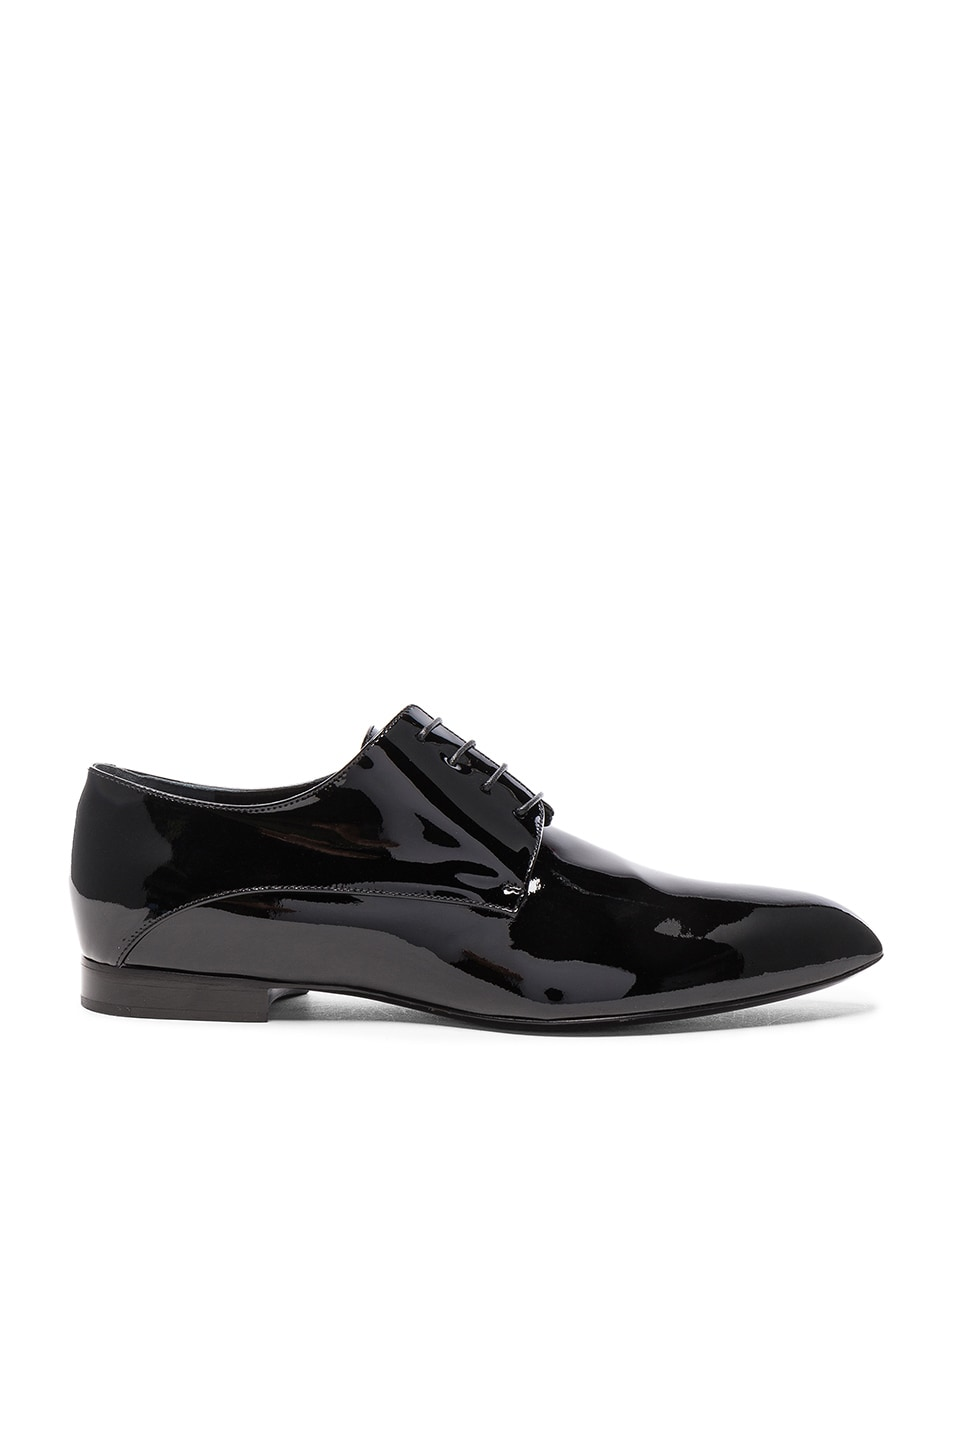 JIL SANDER Patent Leather Oxfords at FORWARD